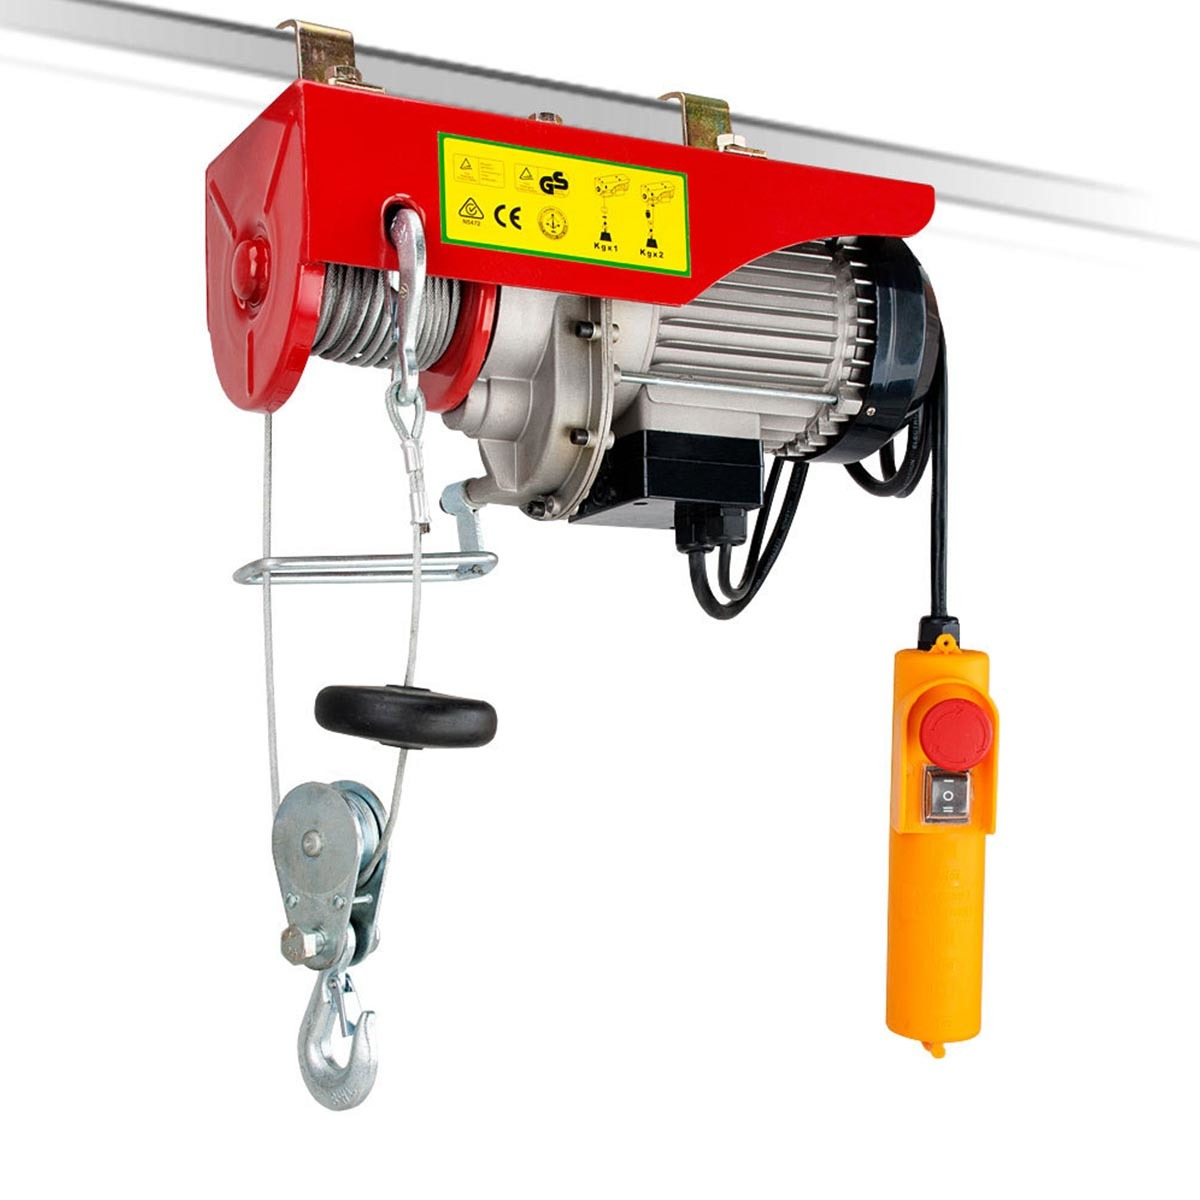 510w 250KG / 1020w 500KG Electric Hoist 240V